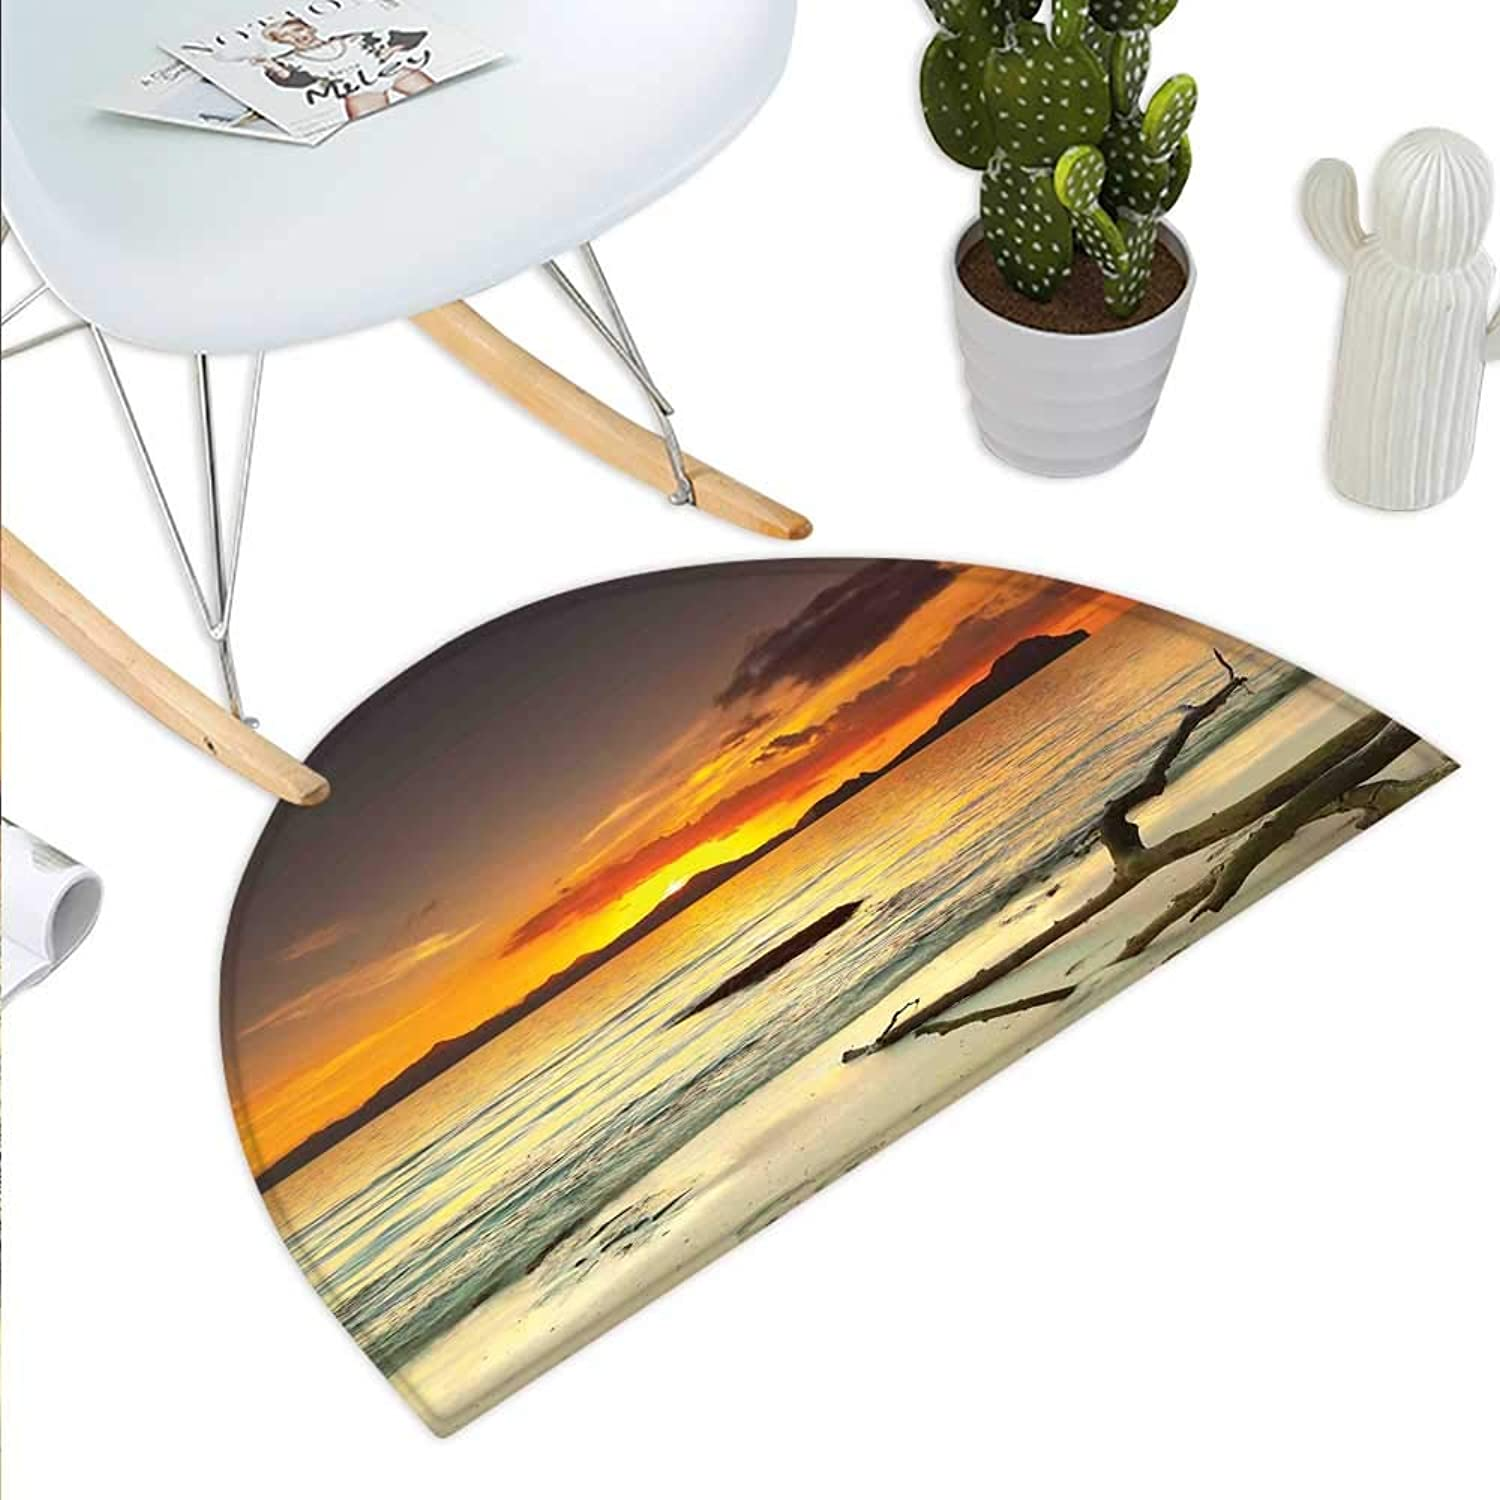 Nature Semicircle Doormat Sunset Over The Island Dry Tree Distant Hills Sandy Shoreline Vacation Destination Halfmoon doormats H 39.3  xD 59  Mauve Yellow